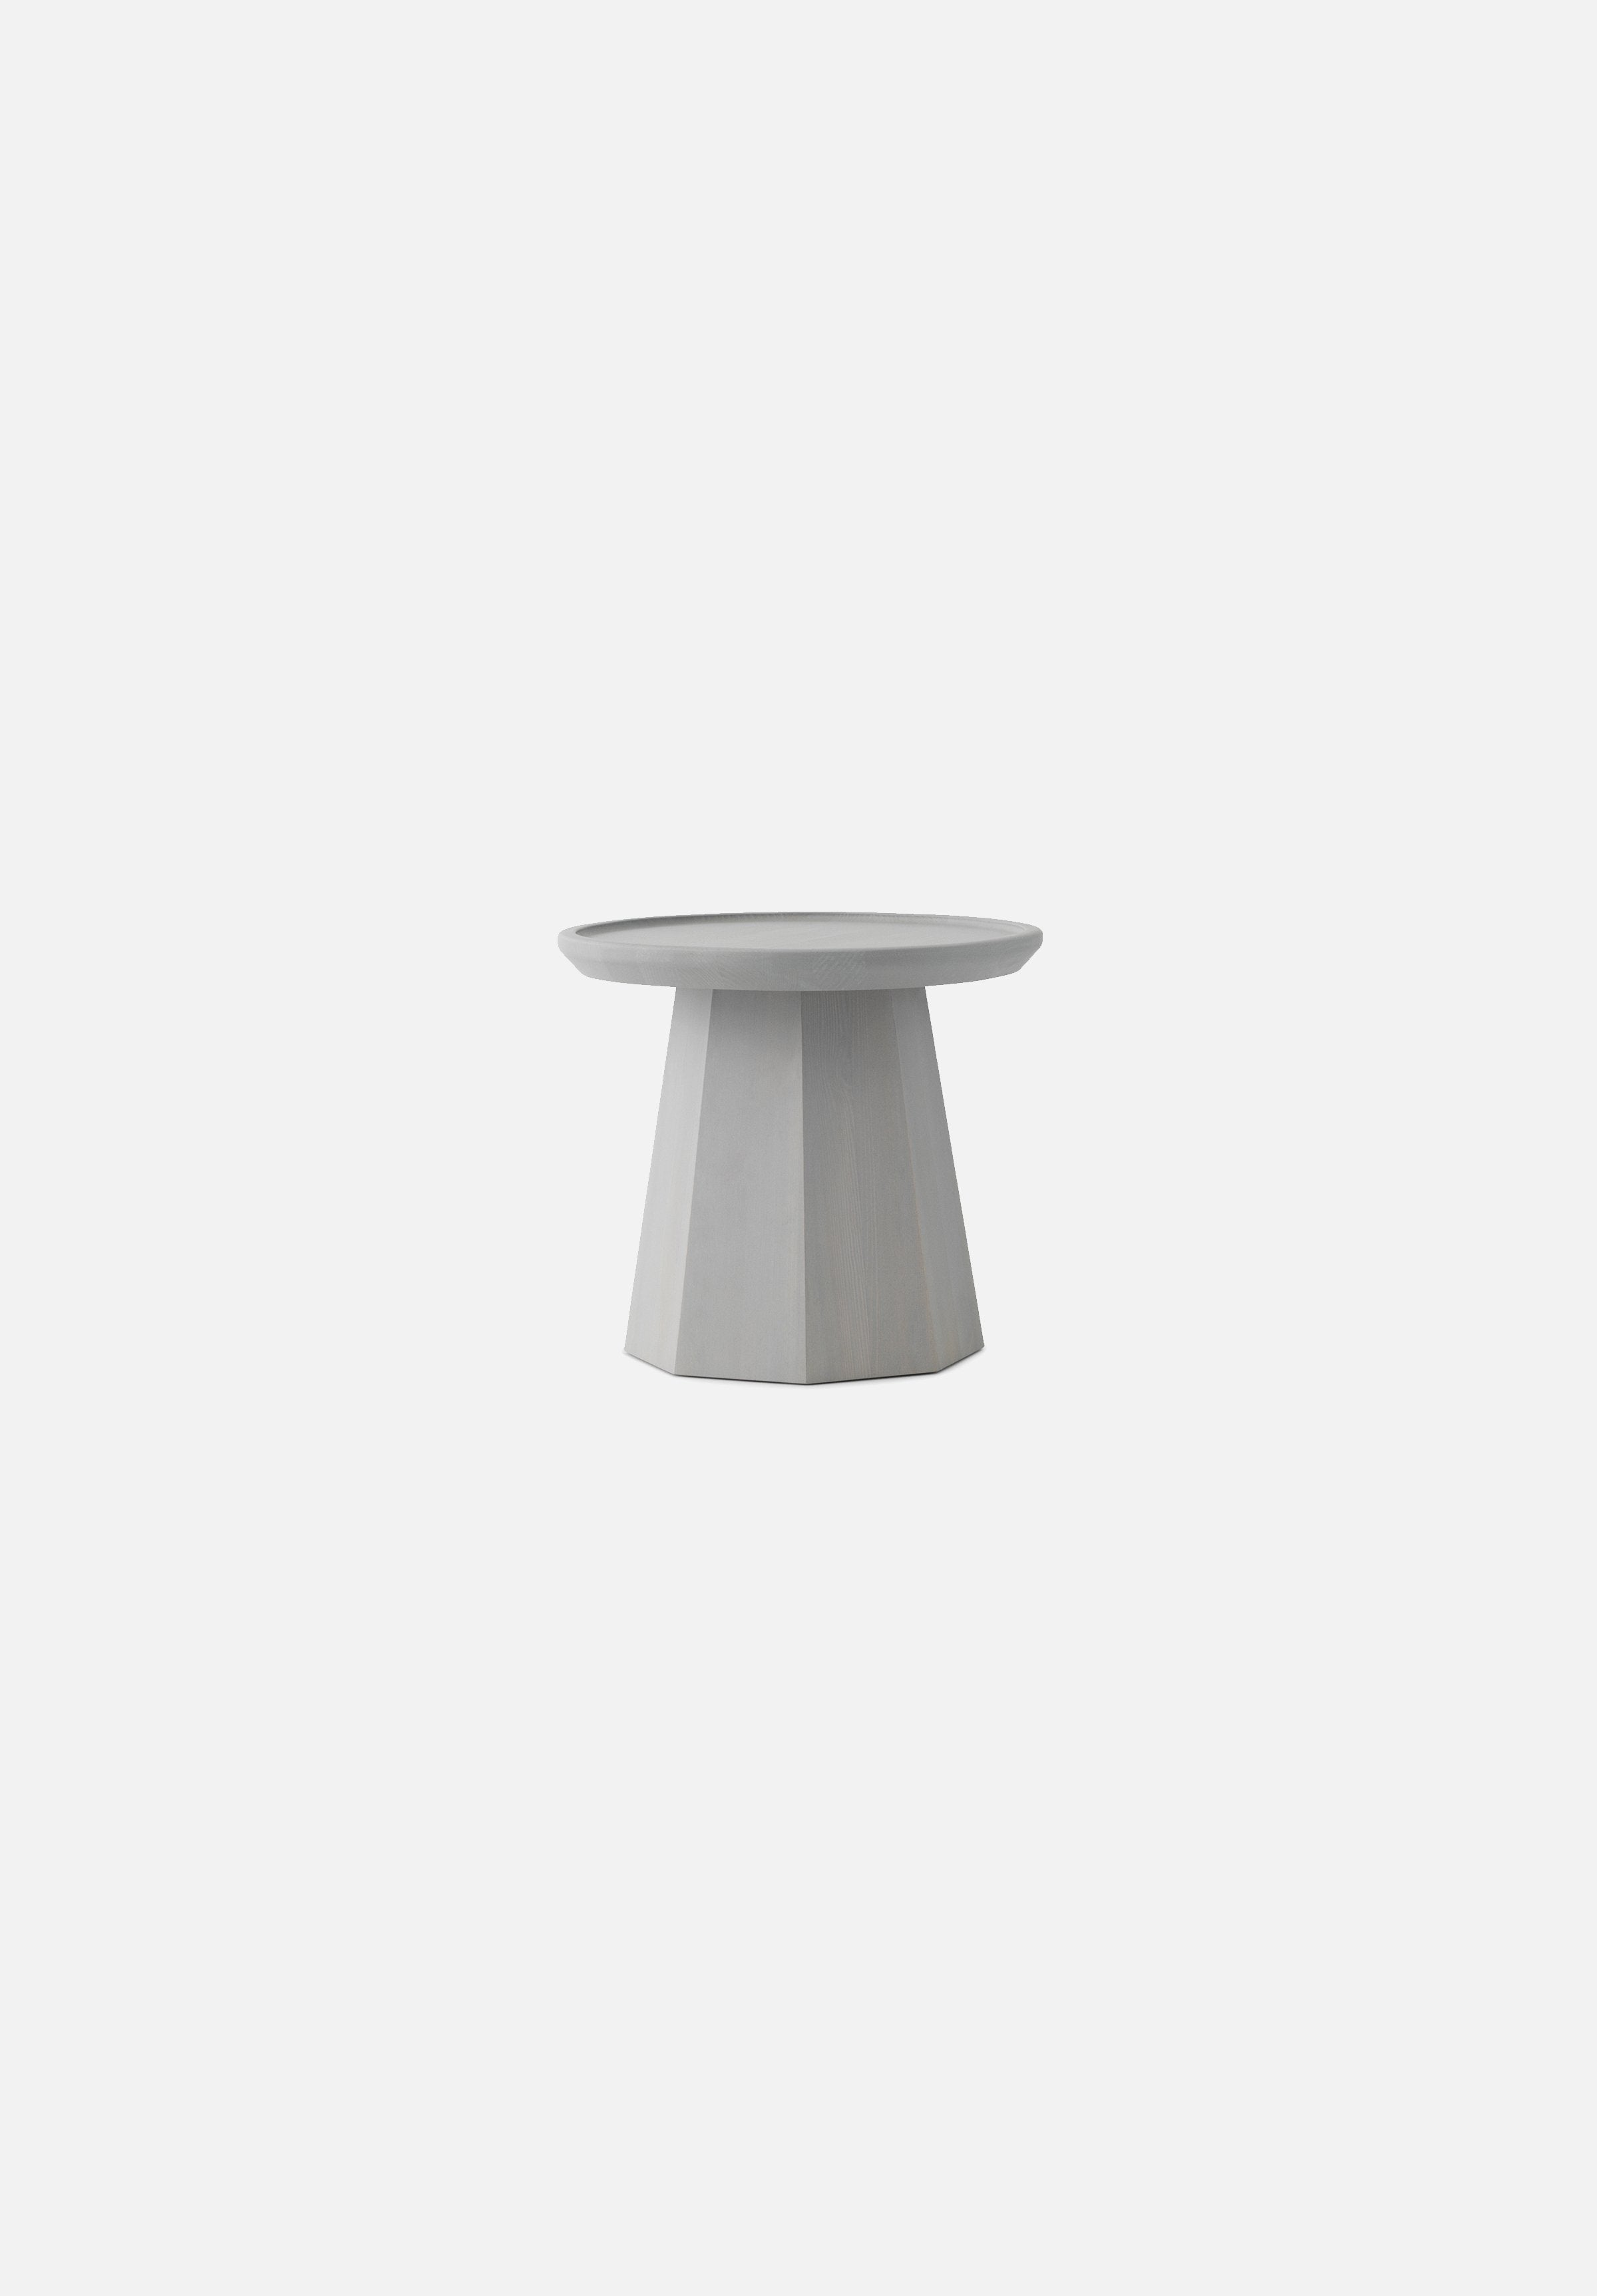 Pine Table-Simon Legald-Normann Copenhagen-light grey-Small-Average-canada-design-store-danish-denmark-furniture-interior